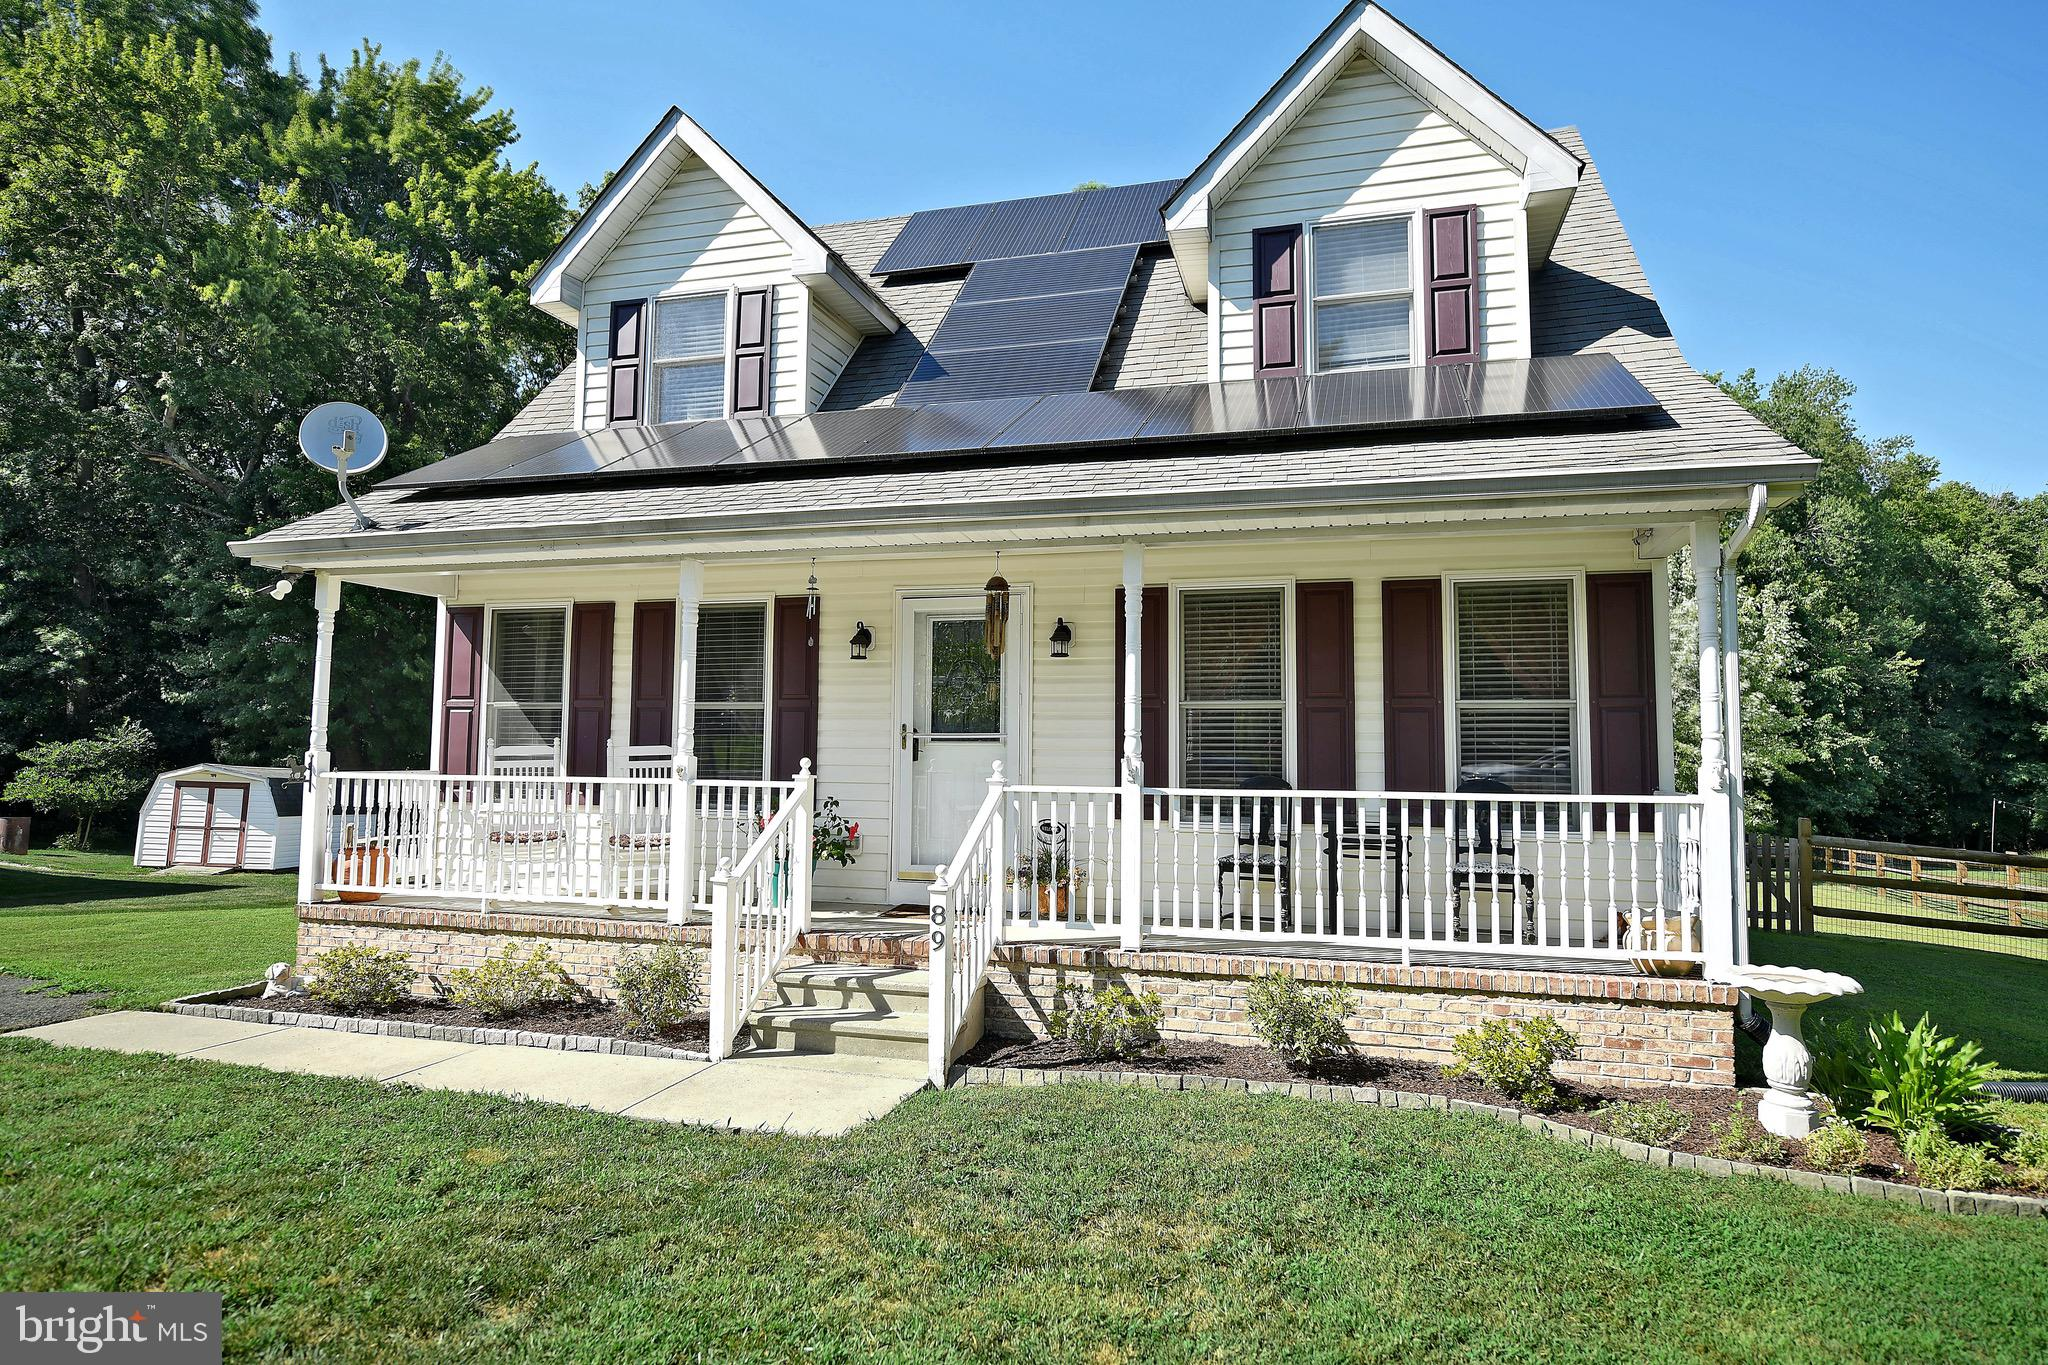 Welcome Home! This well kept single family home is nestled perfectly in the quaint neighborhood of N